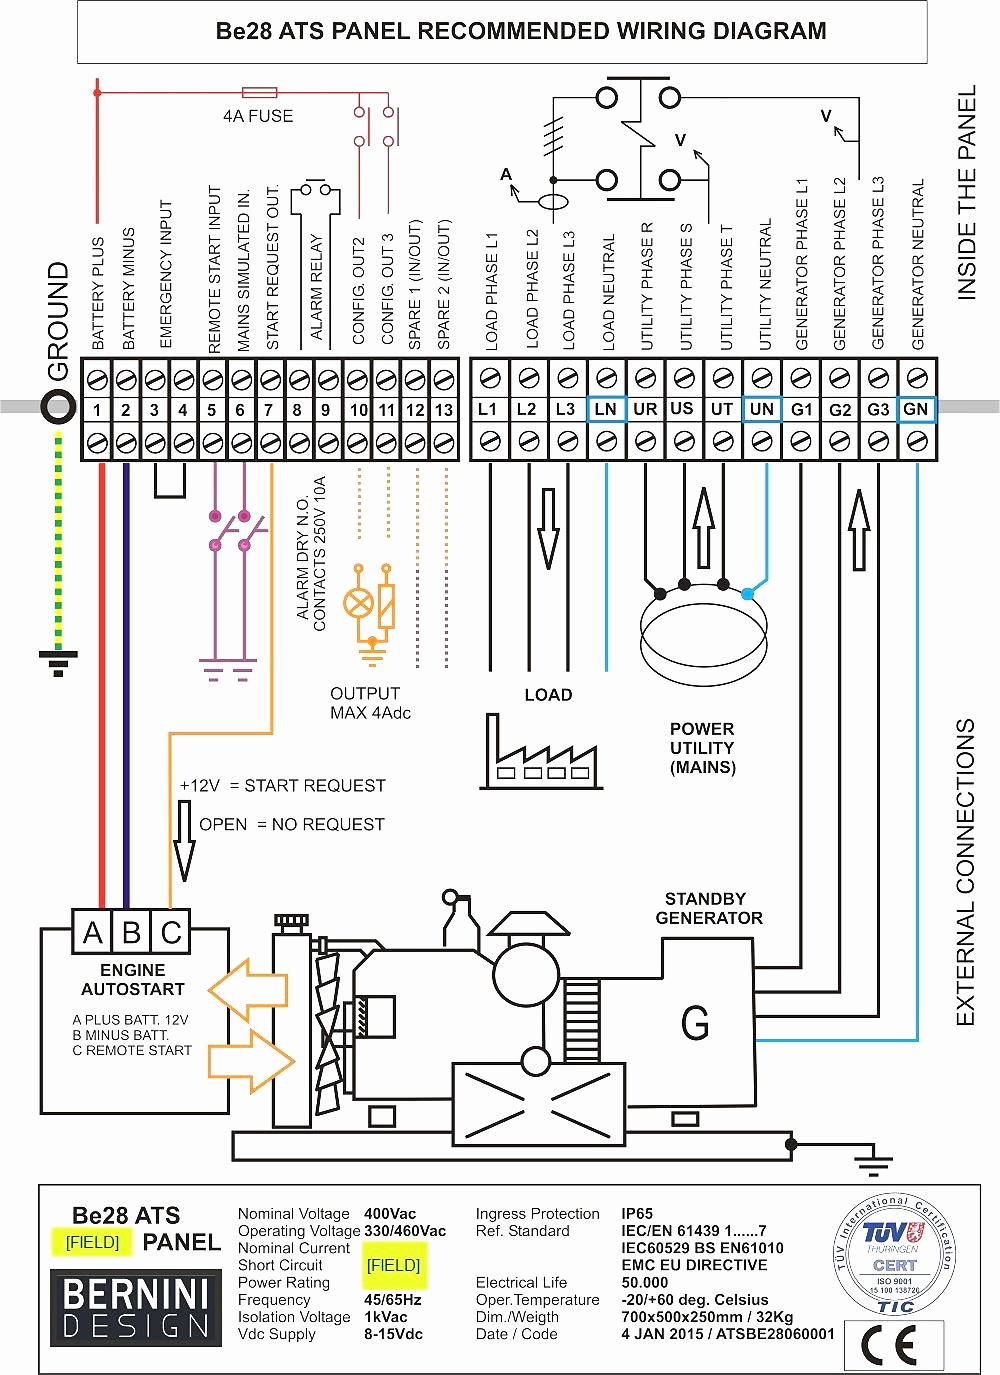 generac wiring diagram Collection-Transfer Switch Wiring Diagram Fresh Generac Automatic Transfer Switch Wiring Diagram Autoctono 10-c